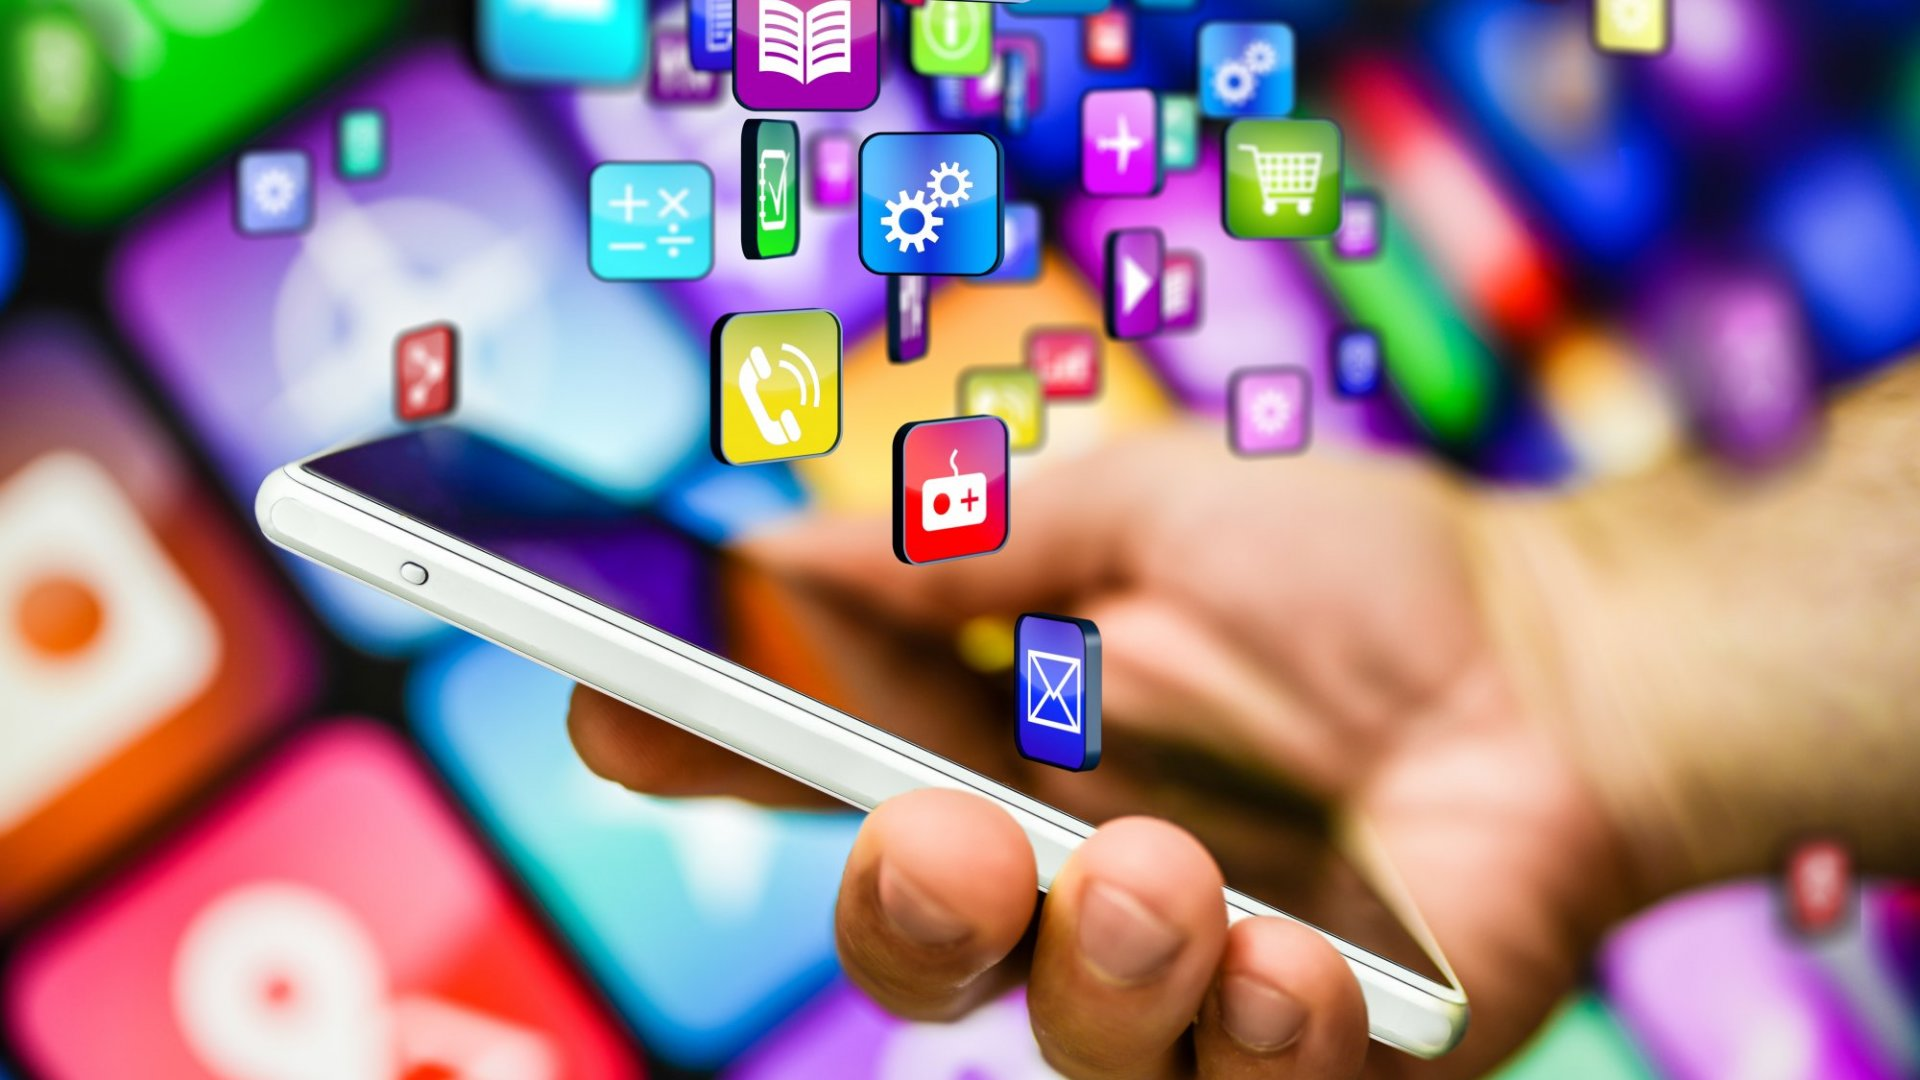 Have a Great Idea for an App? Here's What You Need to Know to Fund It